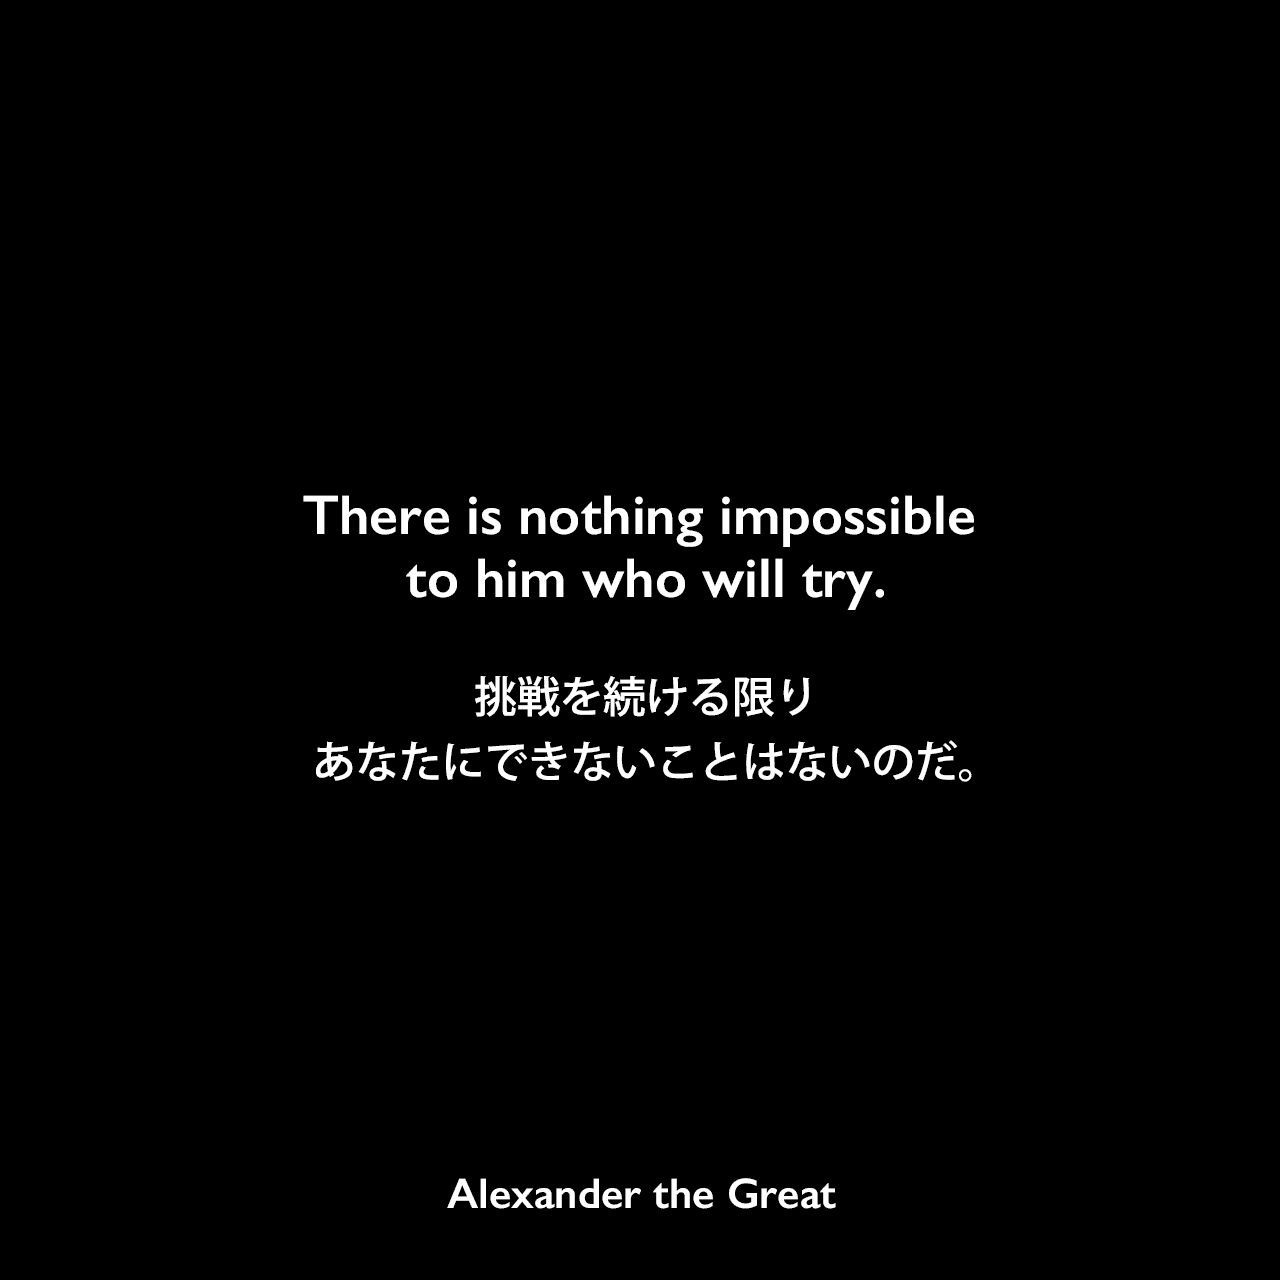 There is nothing impossible to him who will try.挑戦を続ける限りあなたにできないことはないのだ。